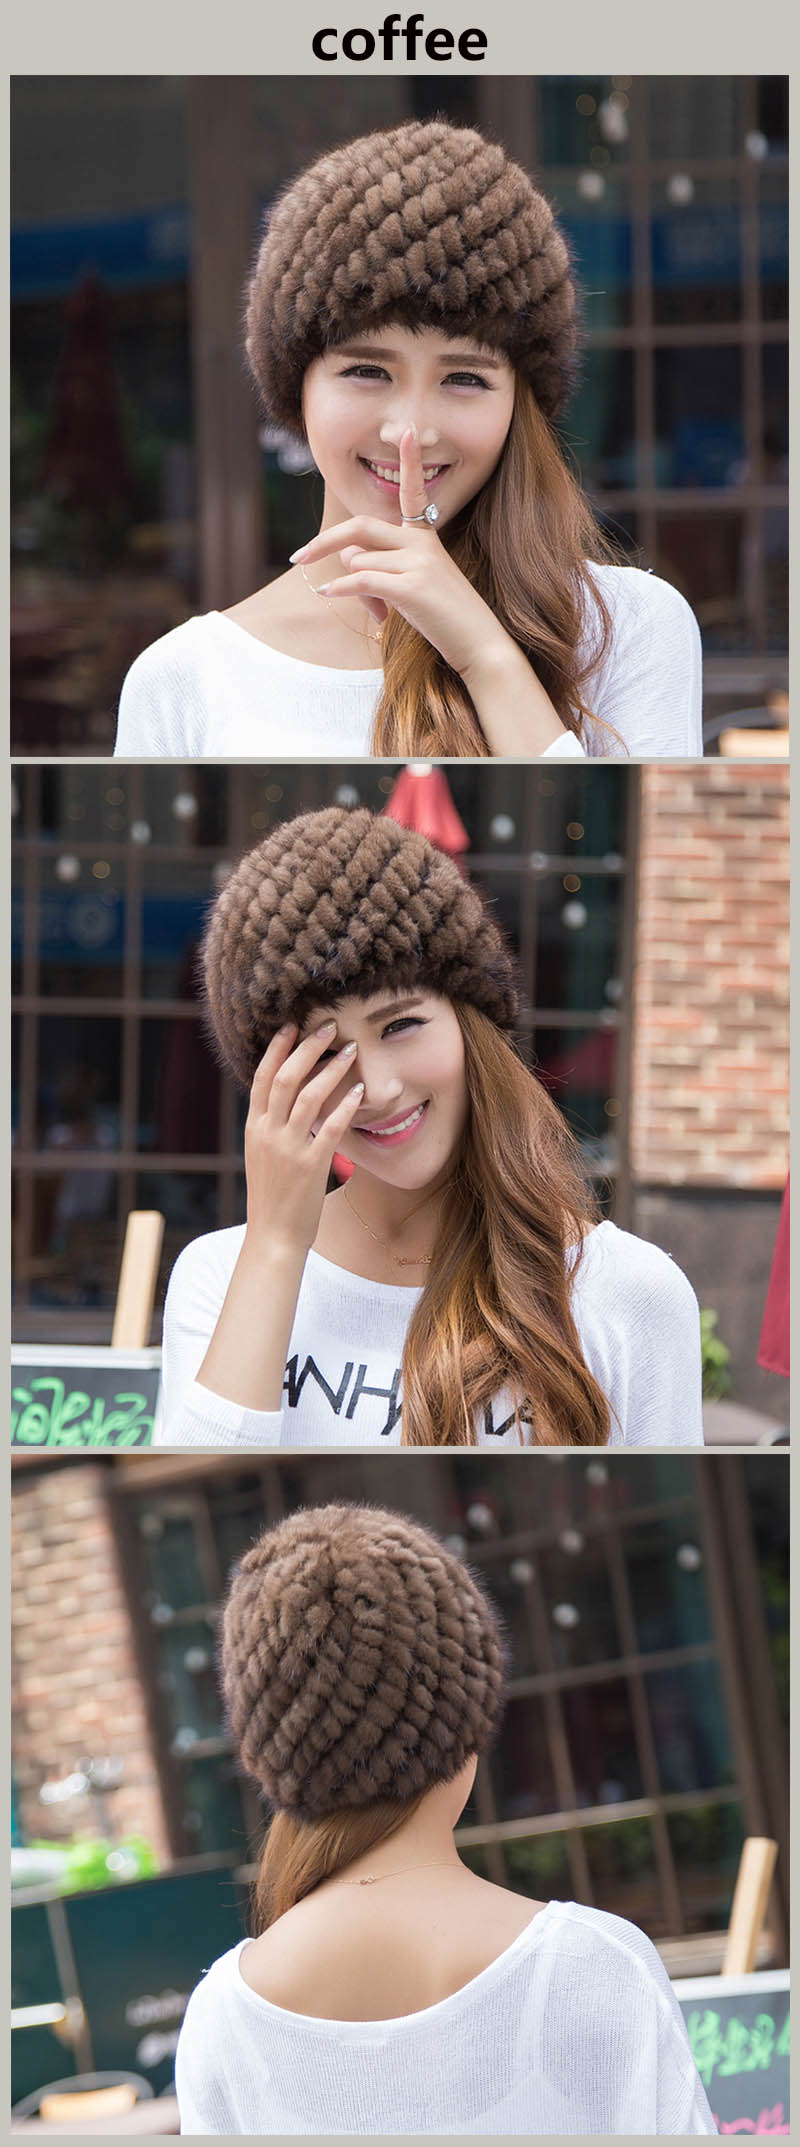 mink hat coffee colors